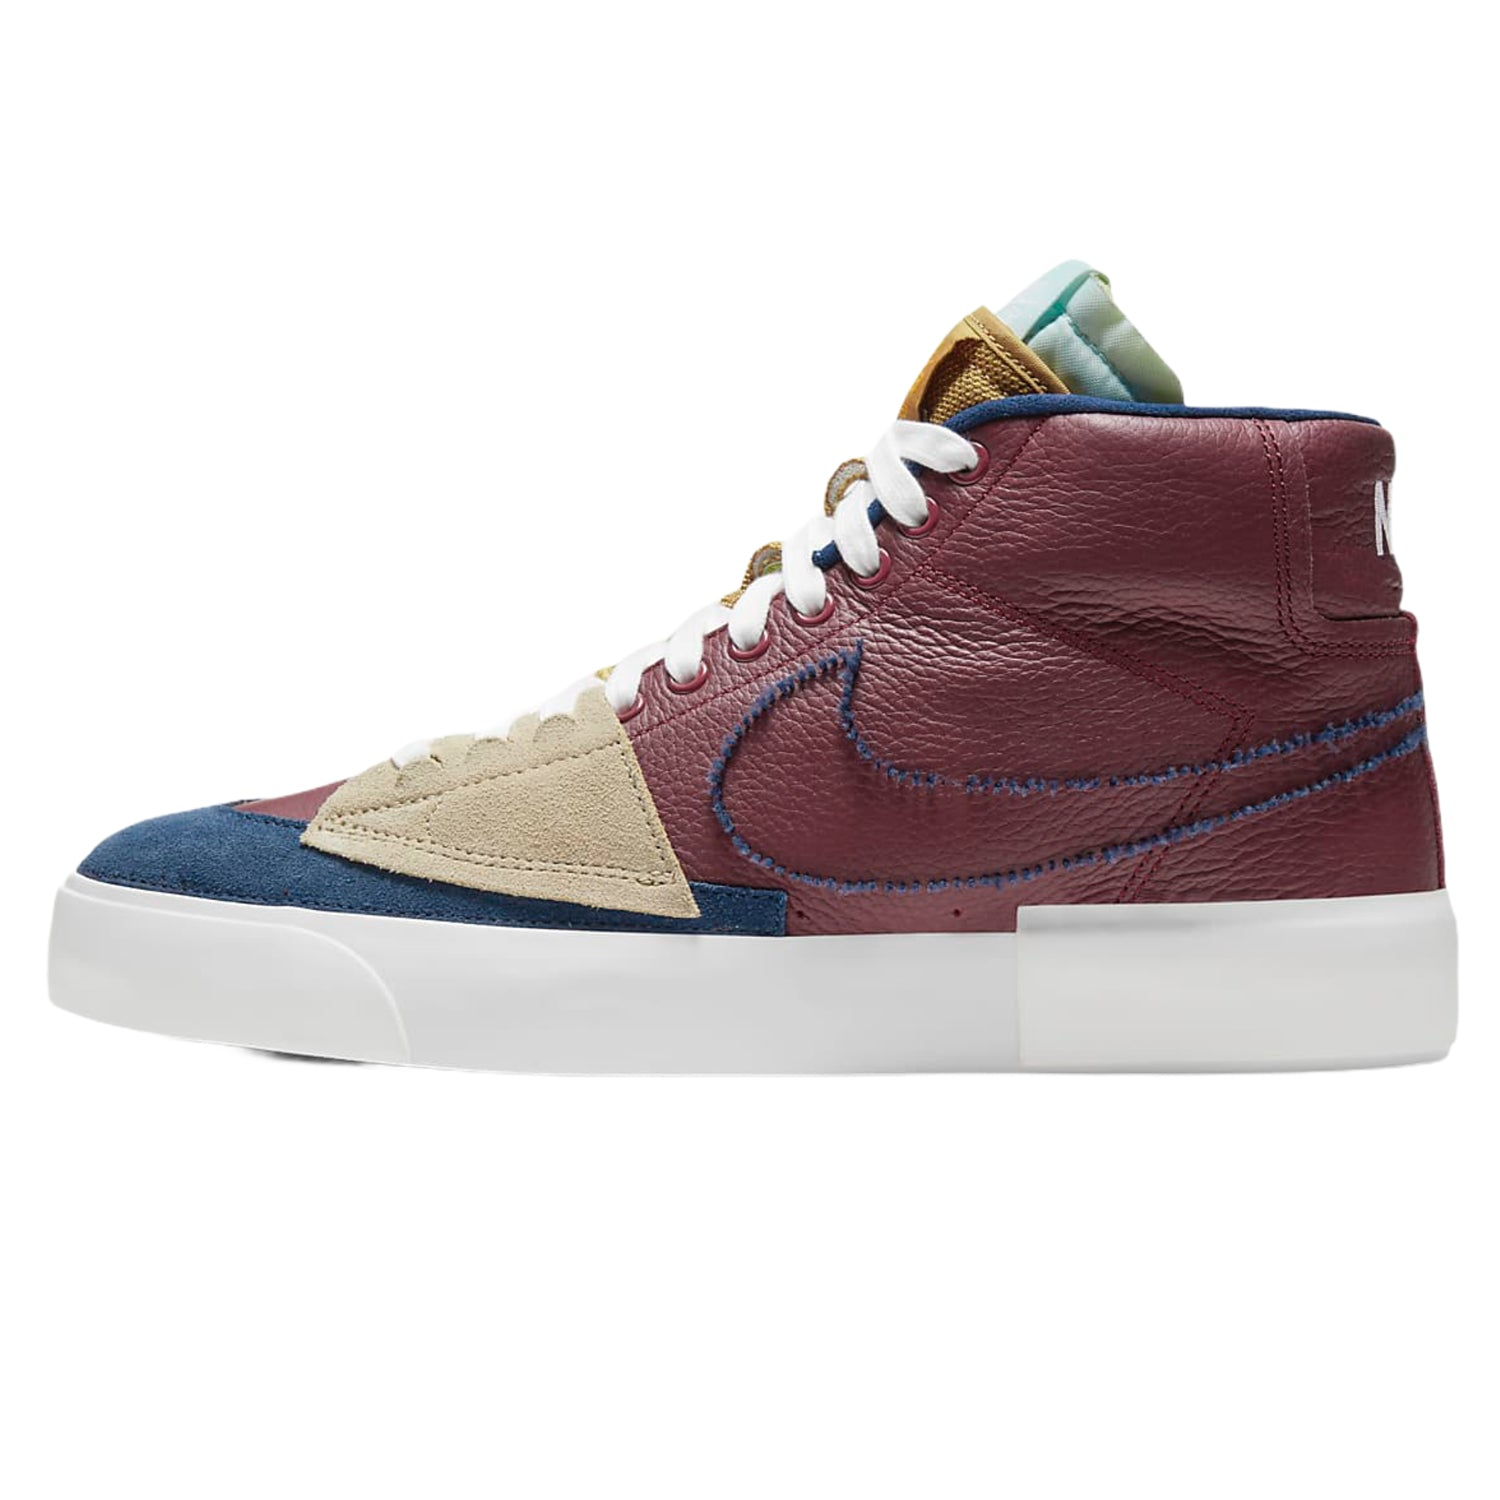 Nike SB Blazer Mid Edge Team Red/Navy Light Drew